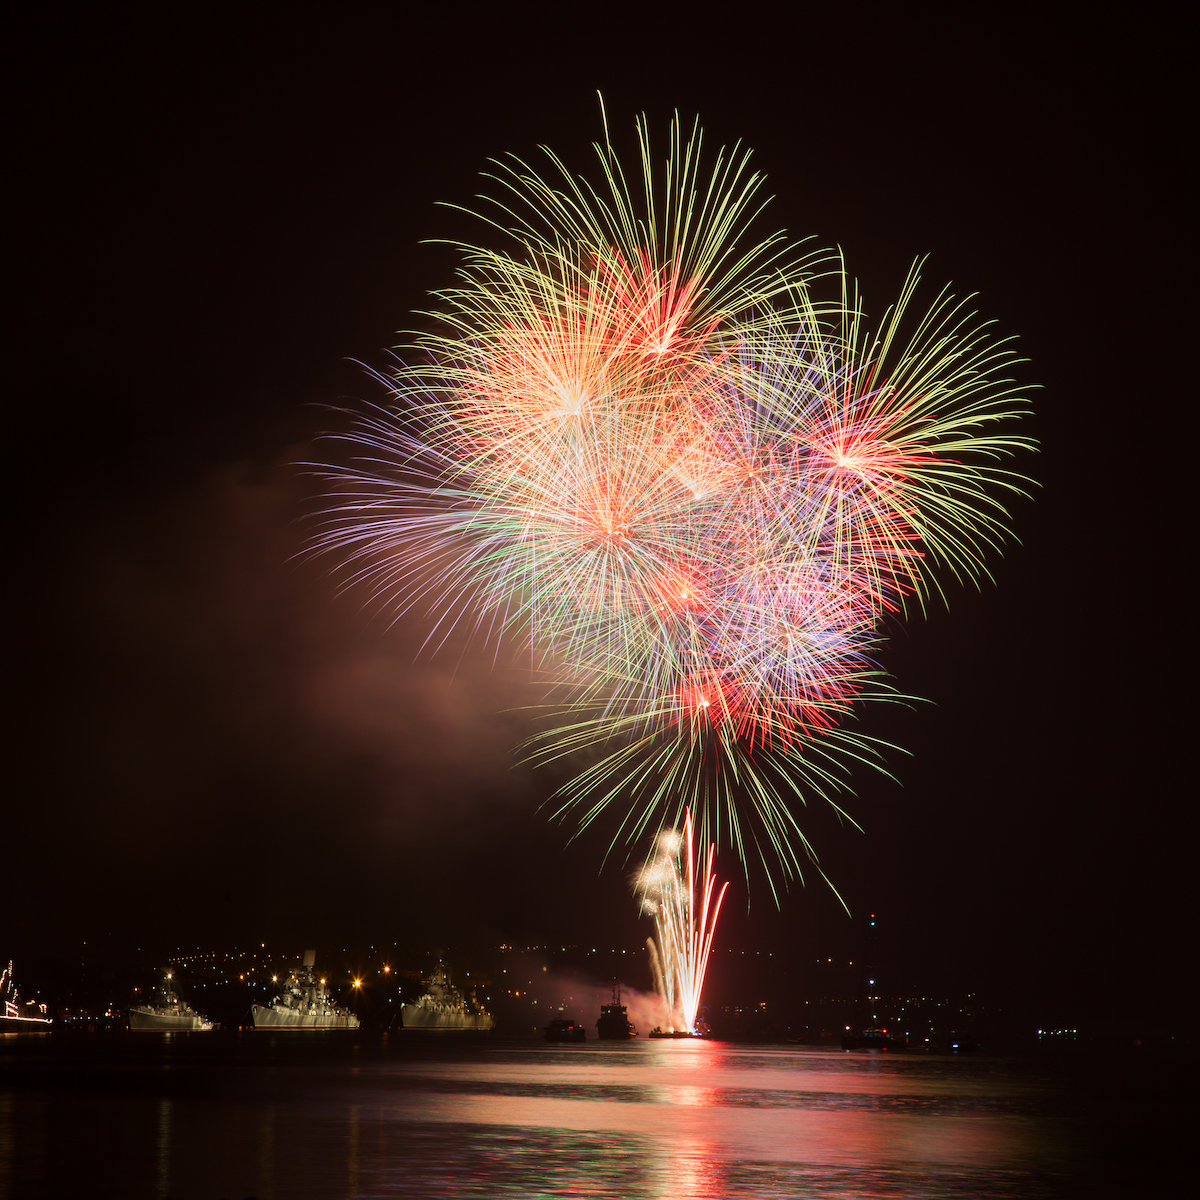 Where Can I Catch the 4th of July Fireworks in New Smyrna